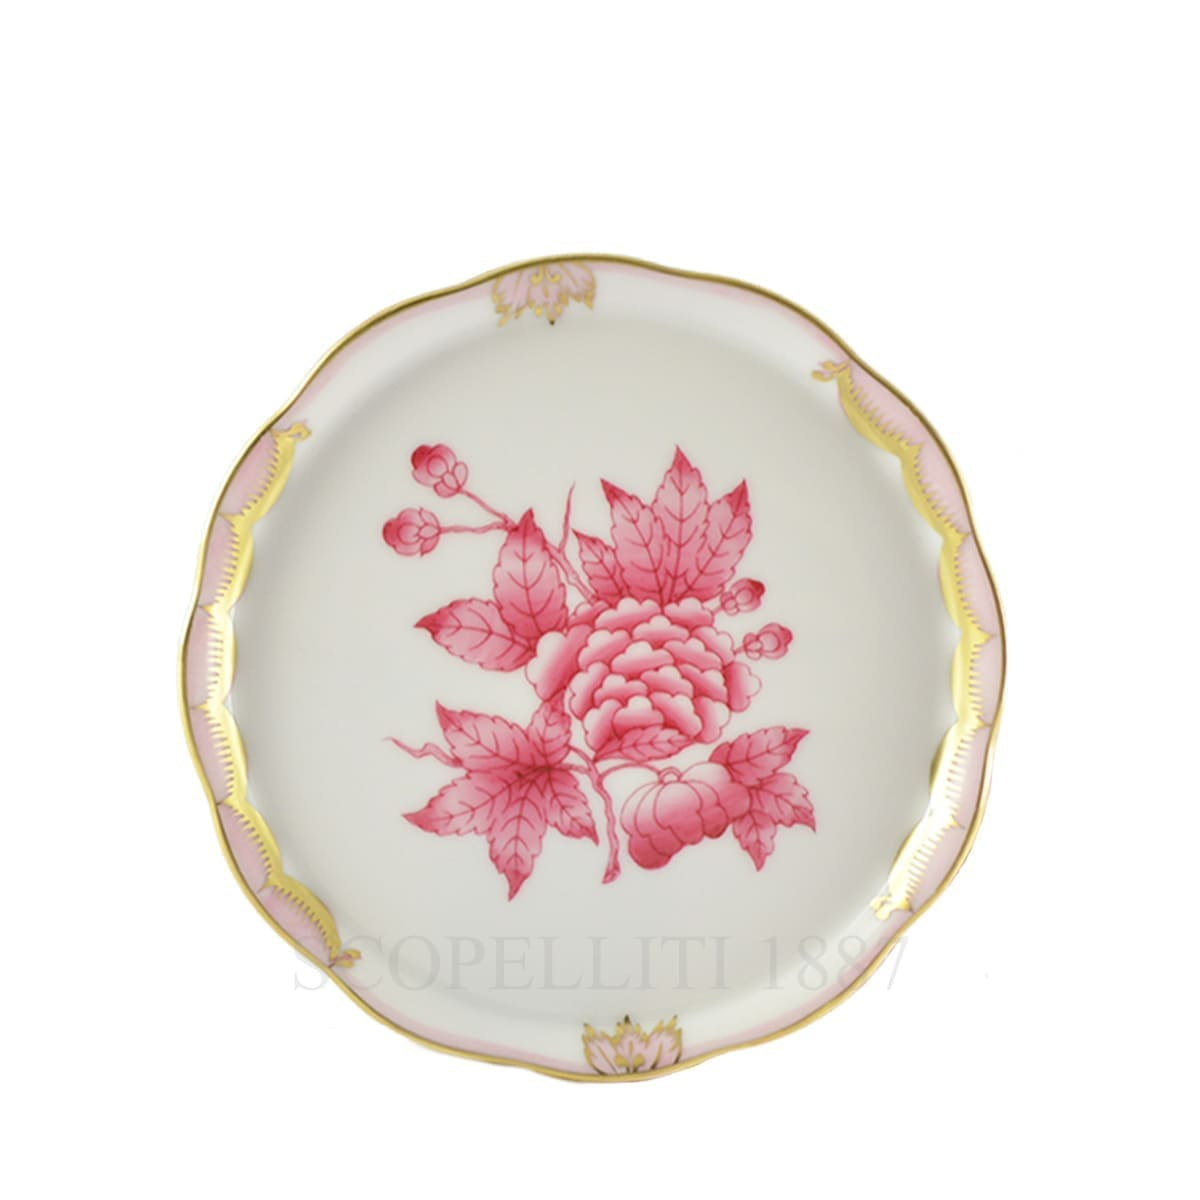 herend handpainted porcelain coaster queen victoria